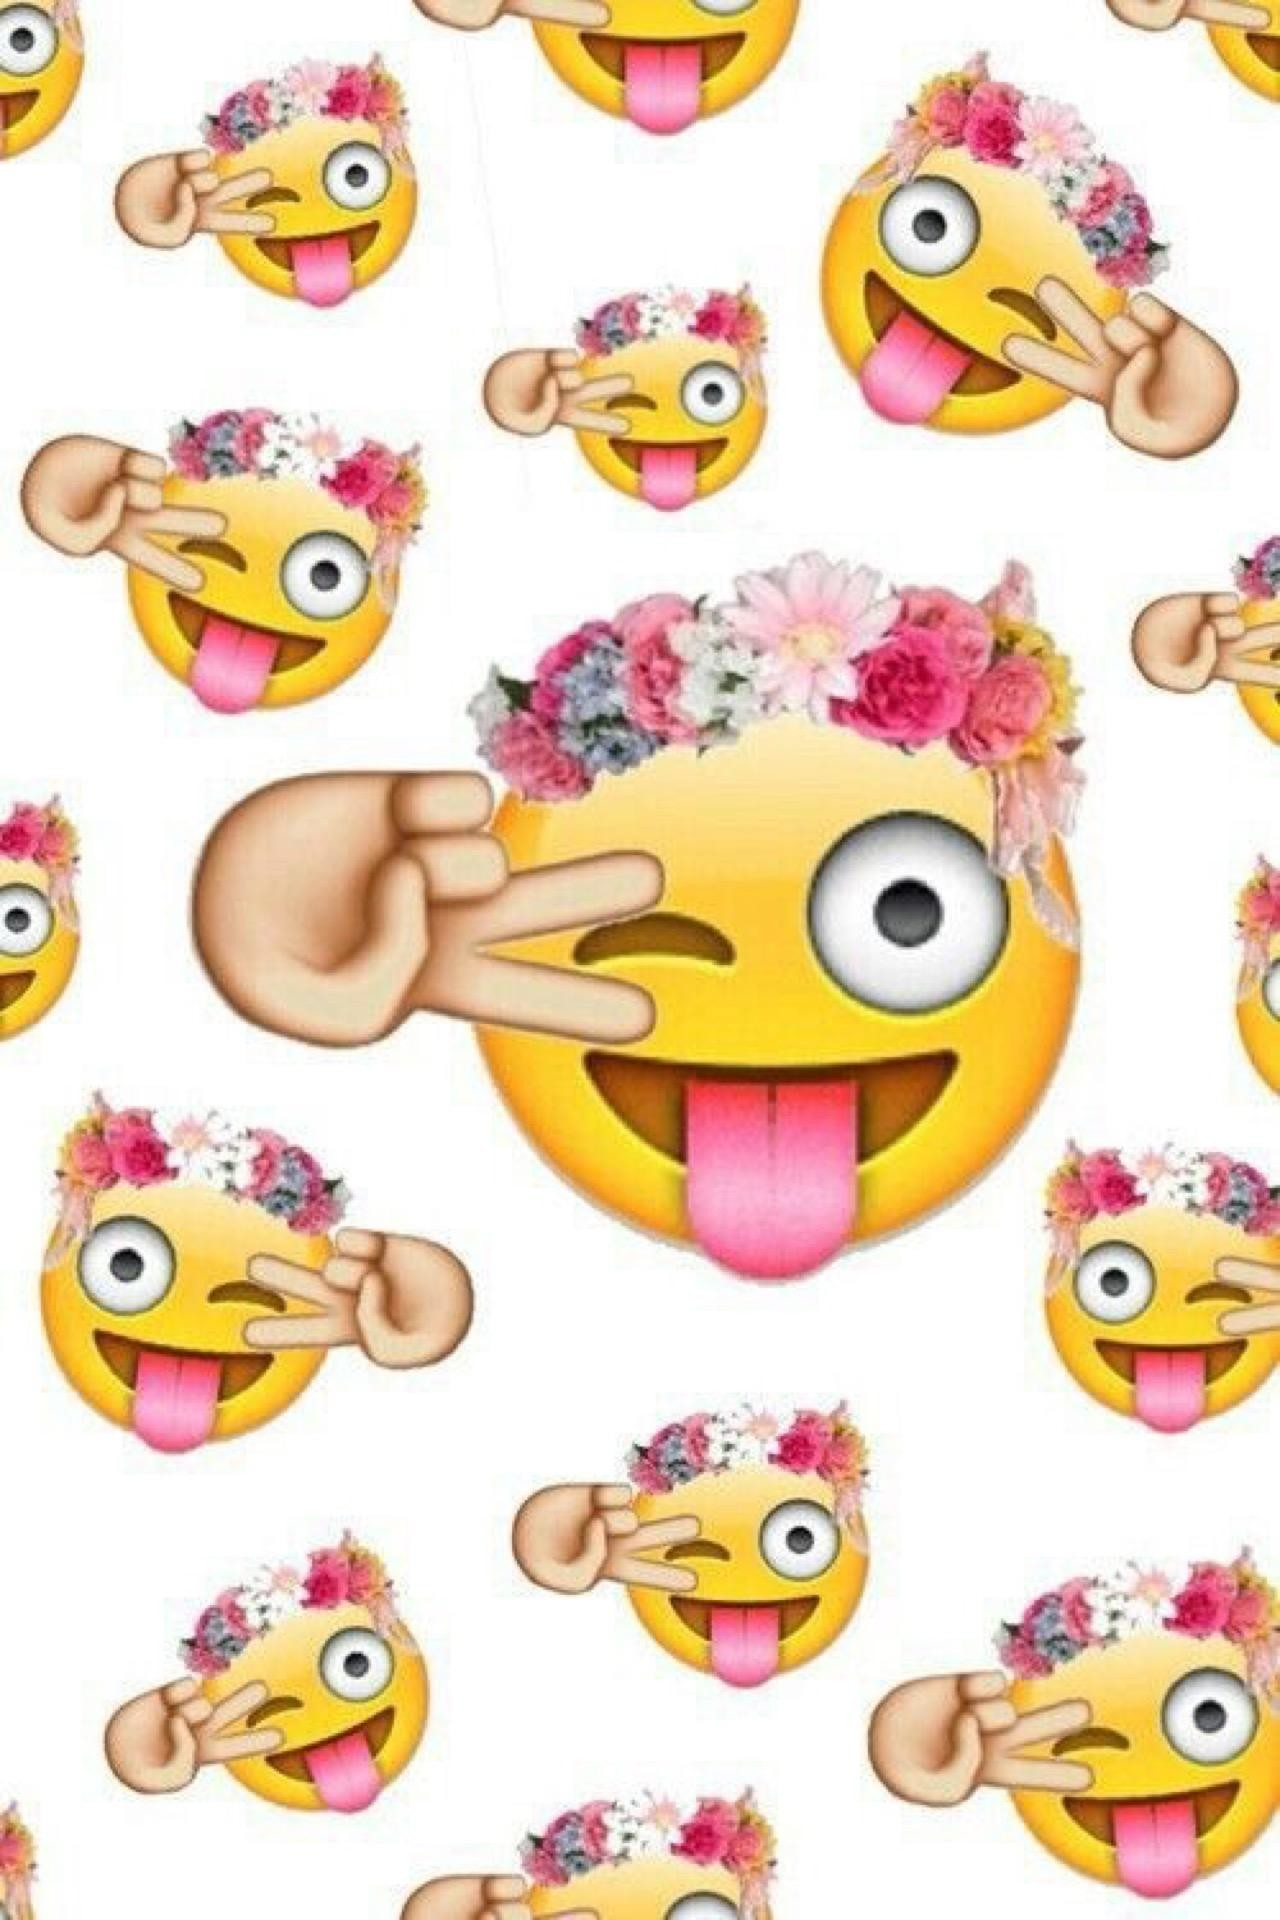 Iphone Girly Cute Emoji Wallpaper Wallpaper Hd For Android